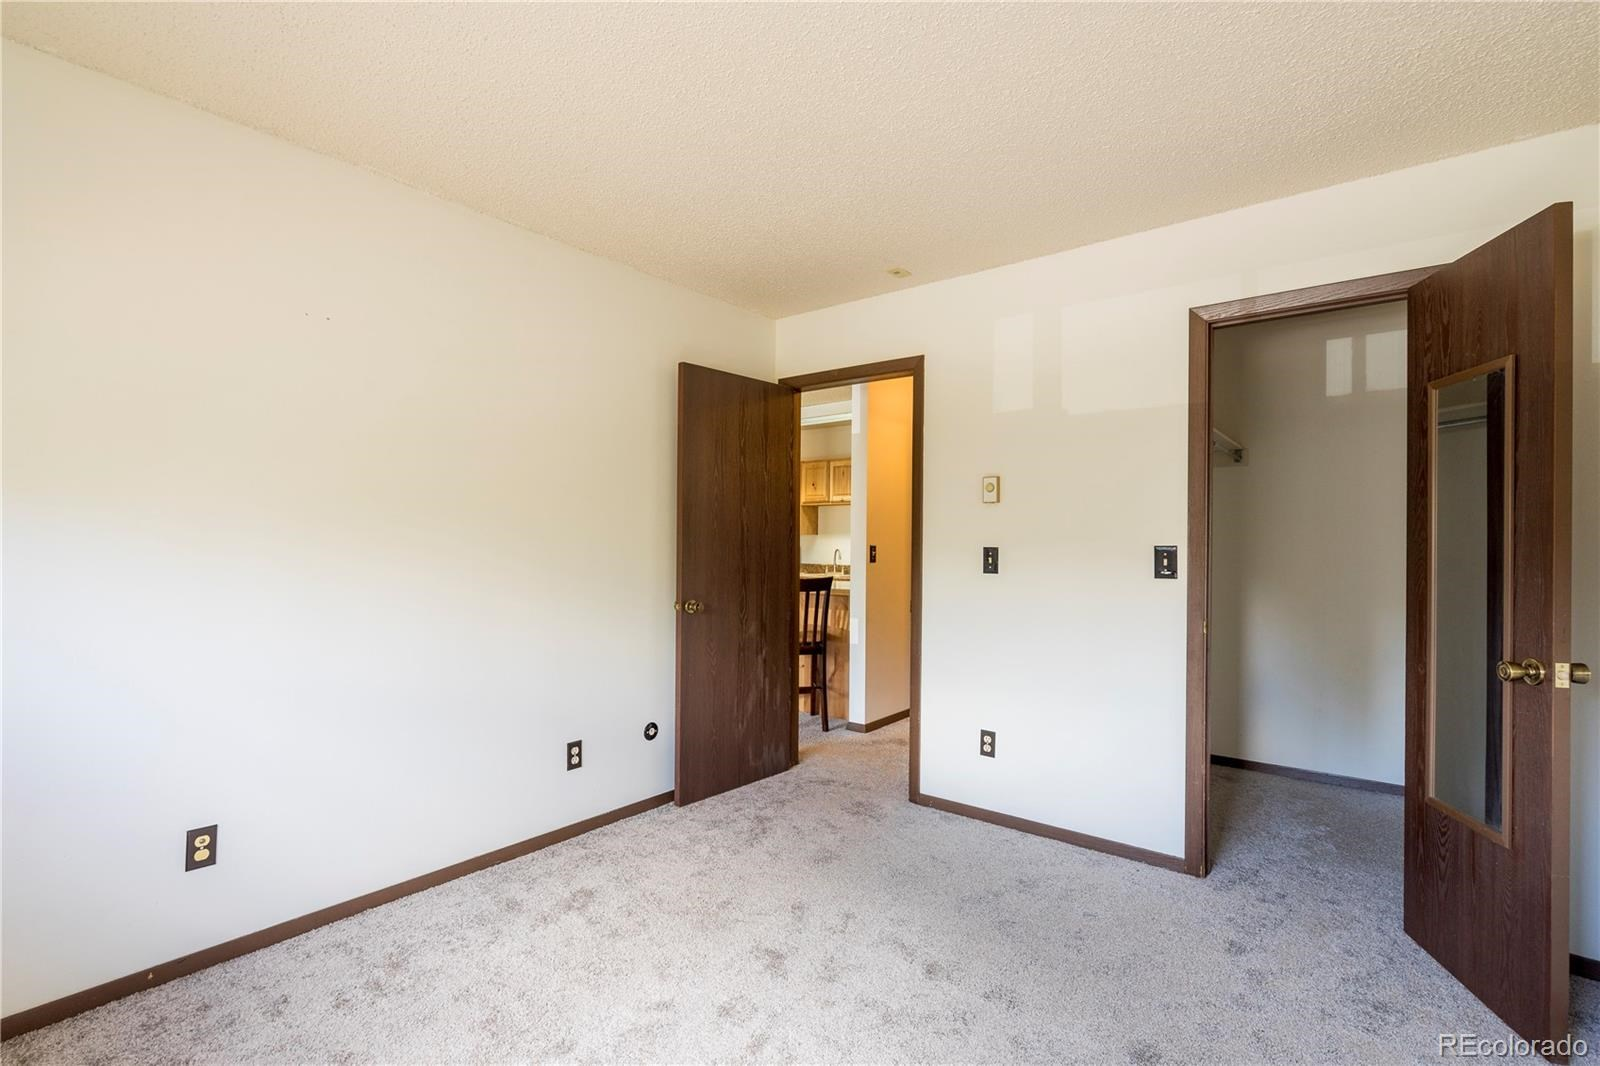 MLS# 5203269 - 8 - 1320 Athens Plaza #4, Steamboat Springs, CO 80487